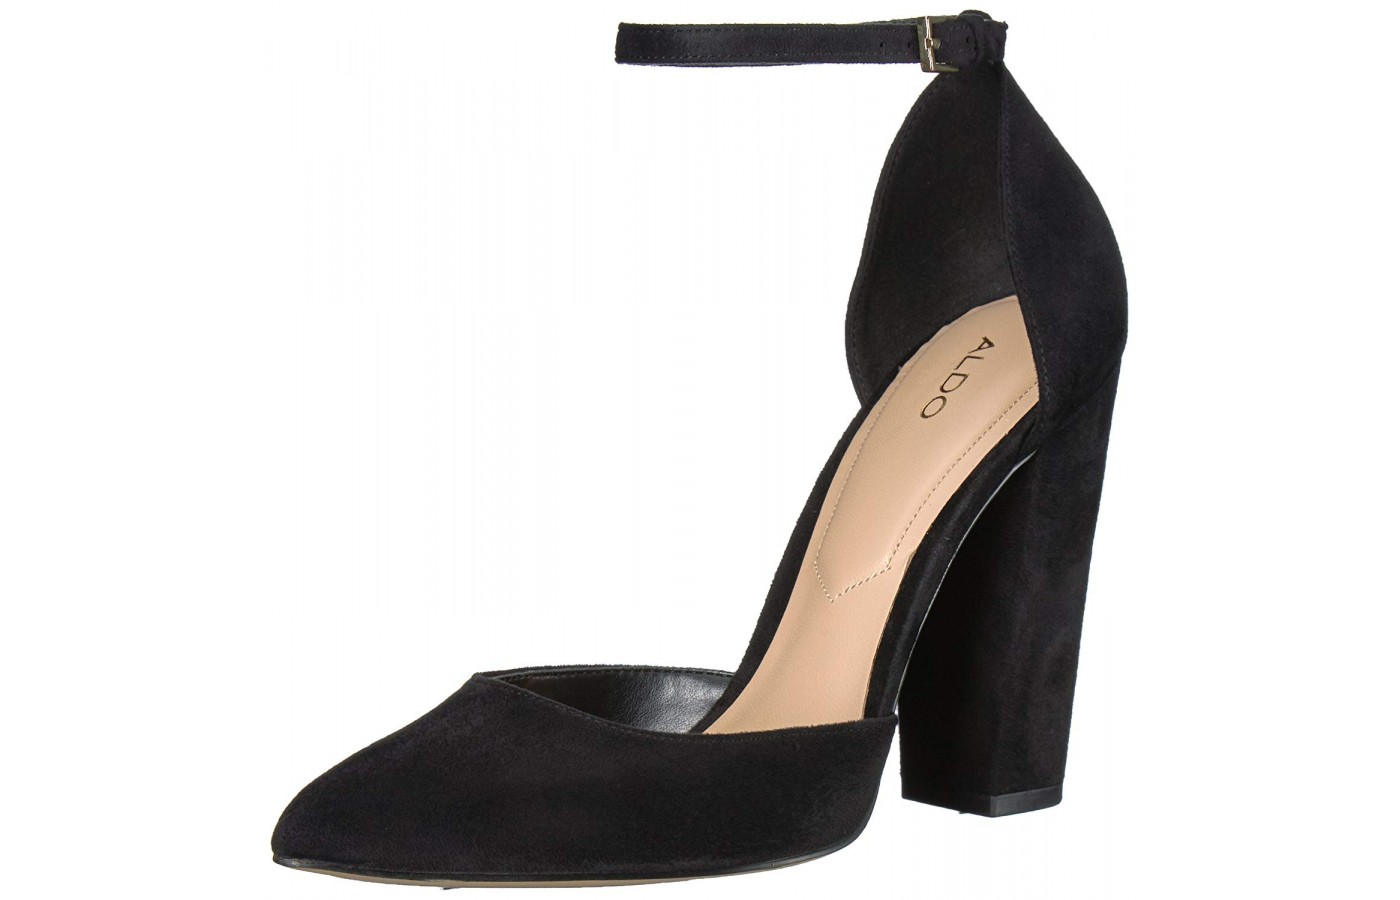 The sleek look of the ALDO Nicholes pump.